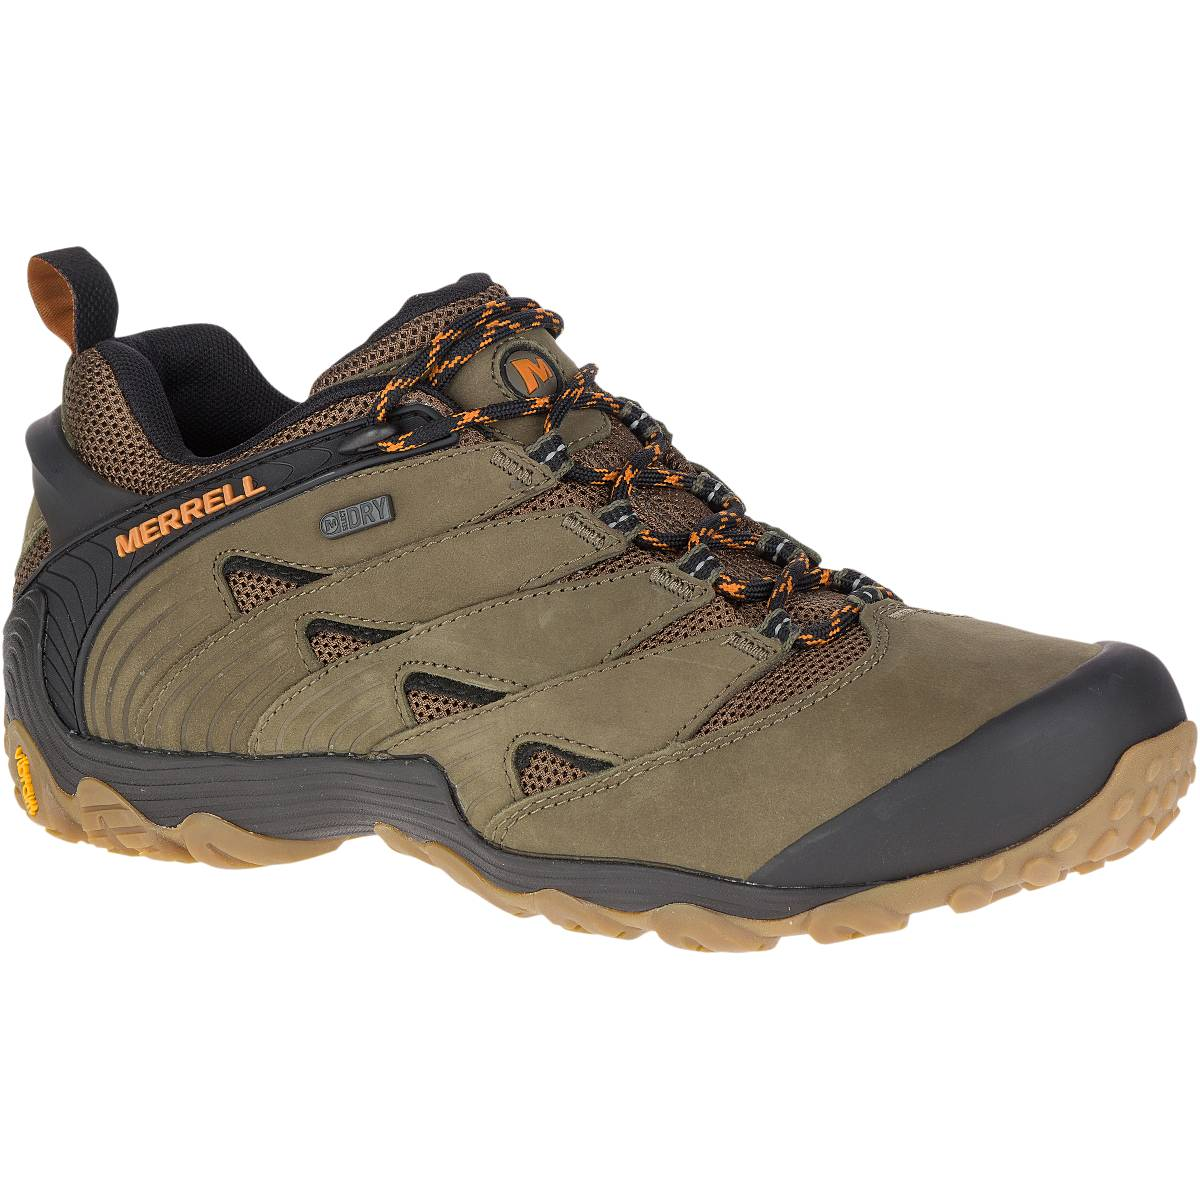 Men's Merrell Chameleon 7 Waterproof Shoes